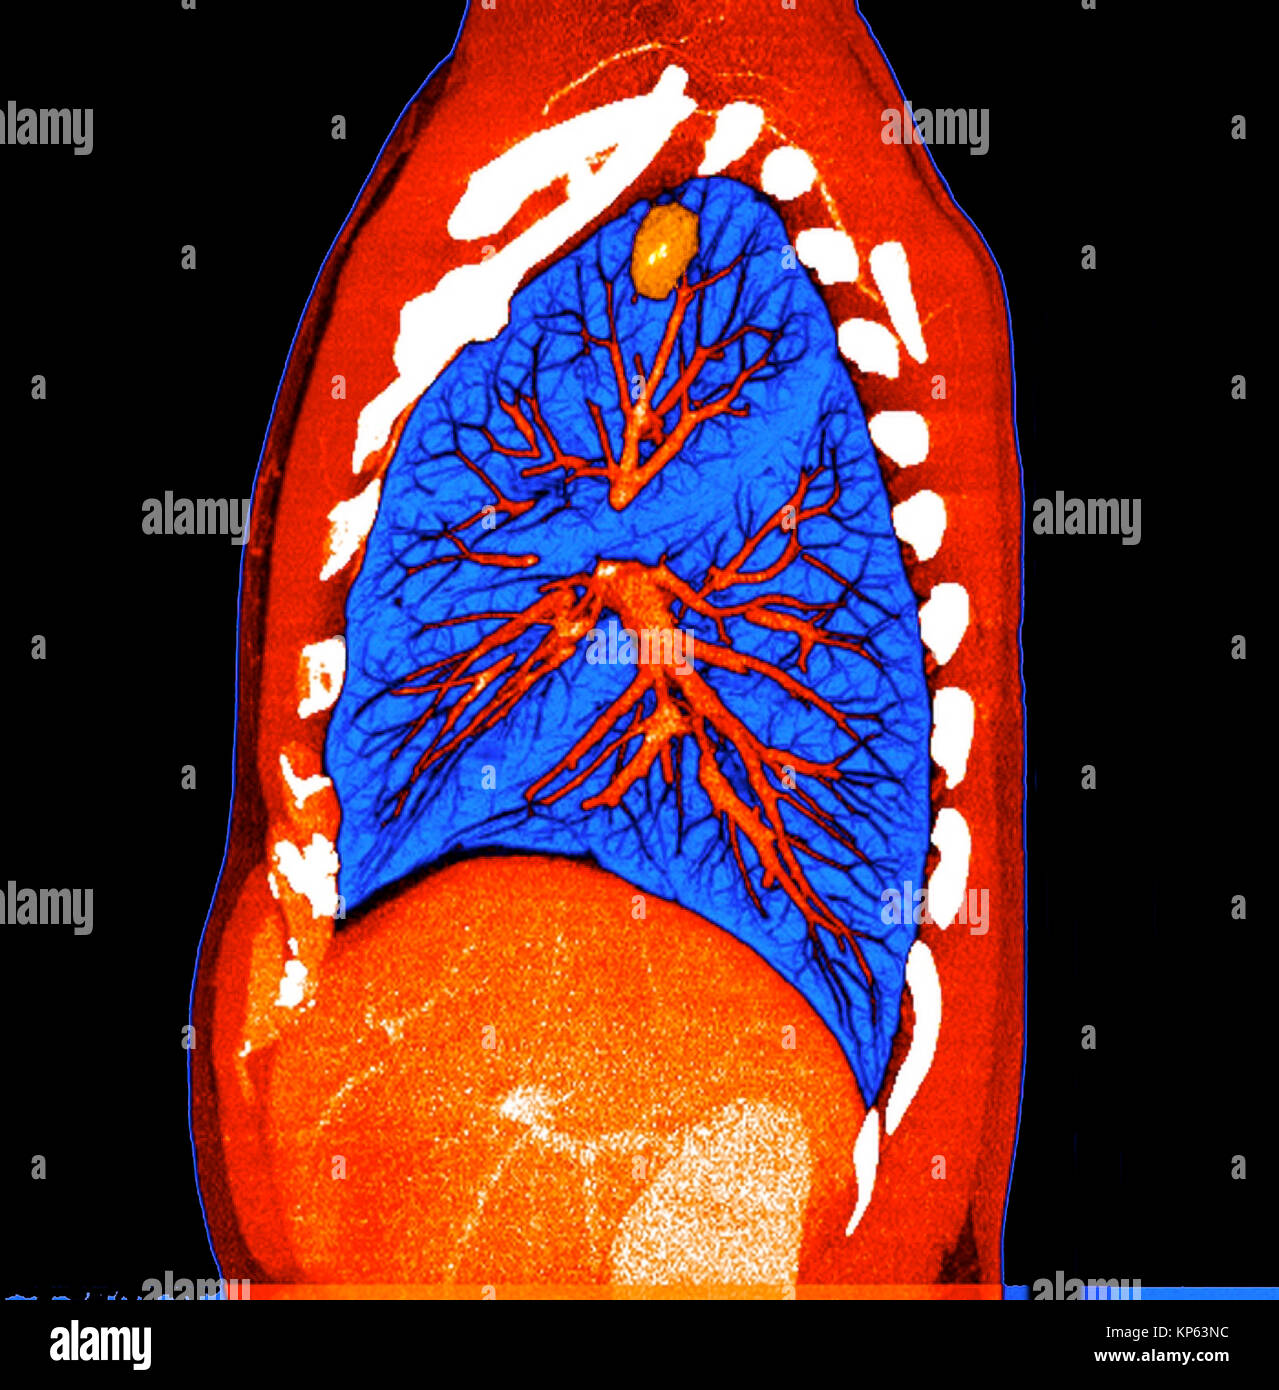 Lung Cancer Ct Scan Stockfotos & Lung Cancer Ct Scan Bilder - Alamy